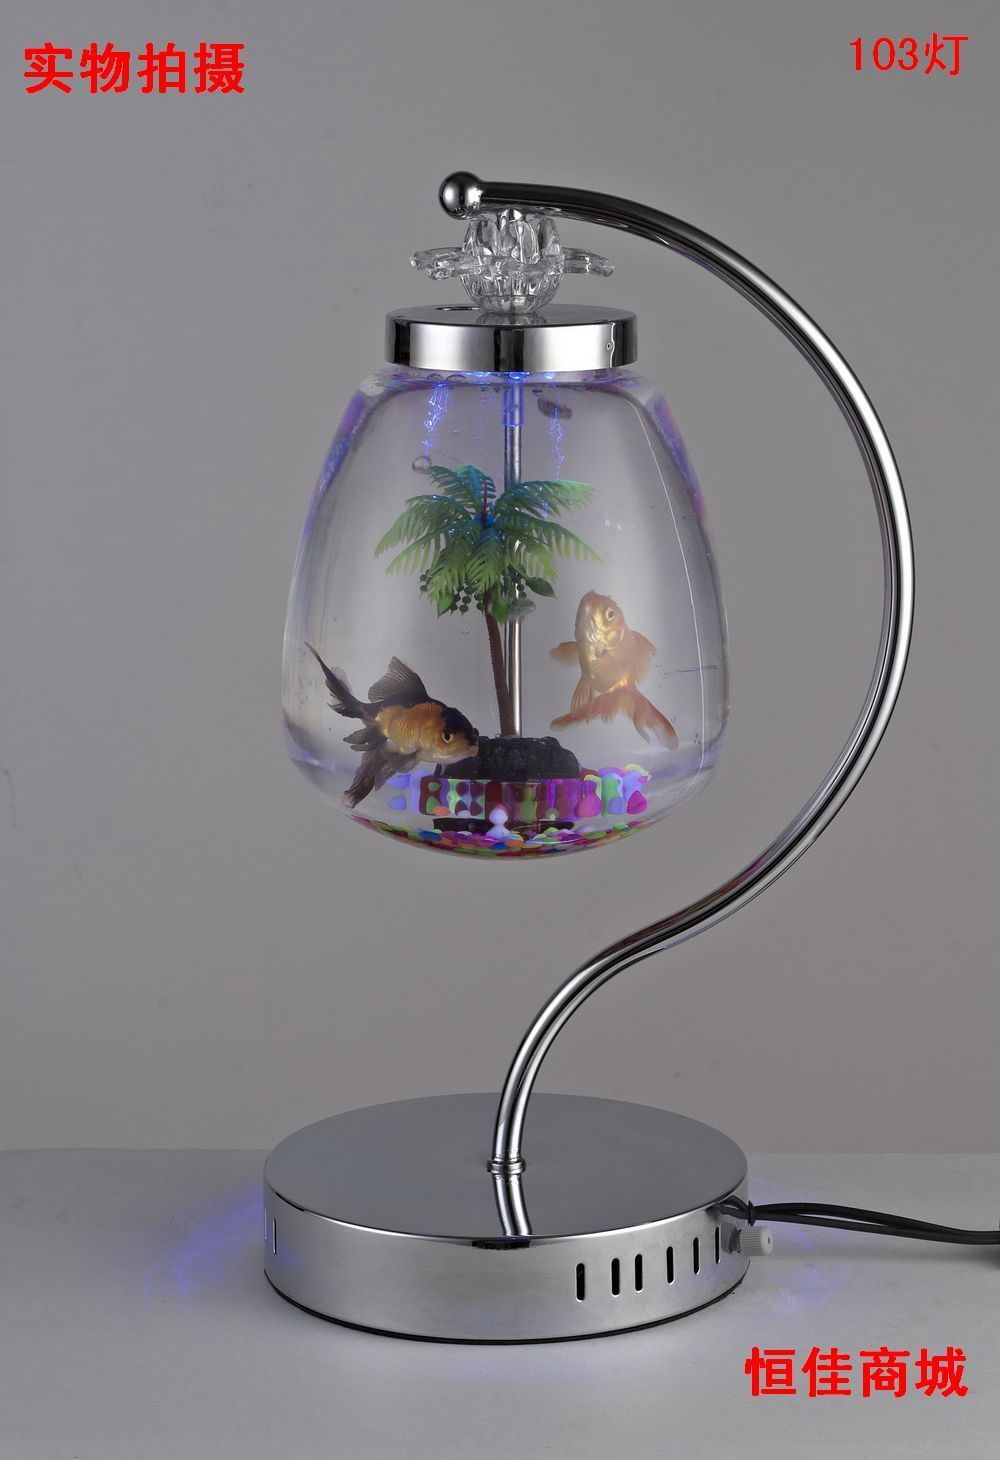 Table Lamp Fish Tank Small Desktop Fish Tank Goldfish Bowl Decoration Fishtales Pinterest